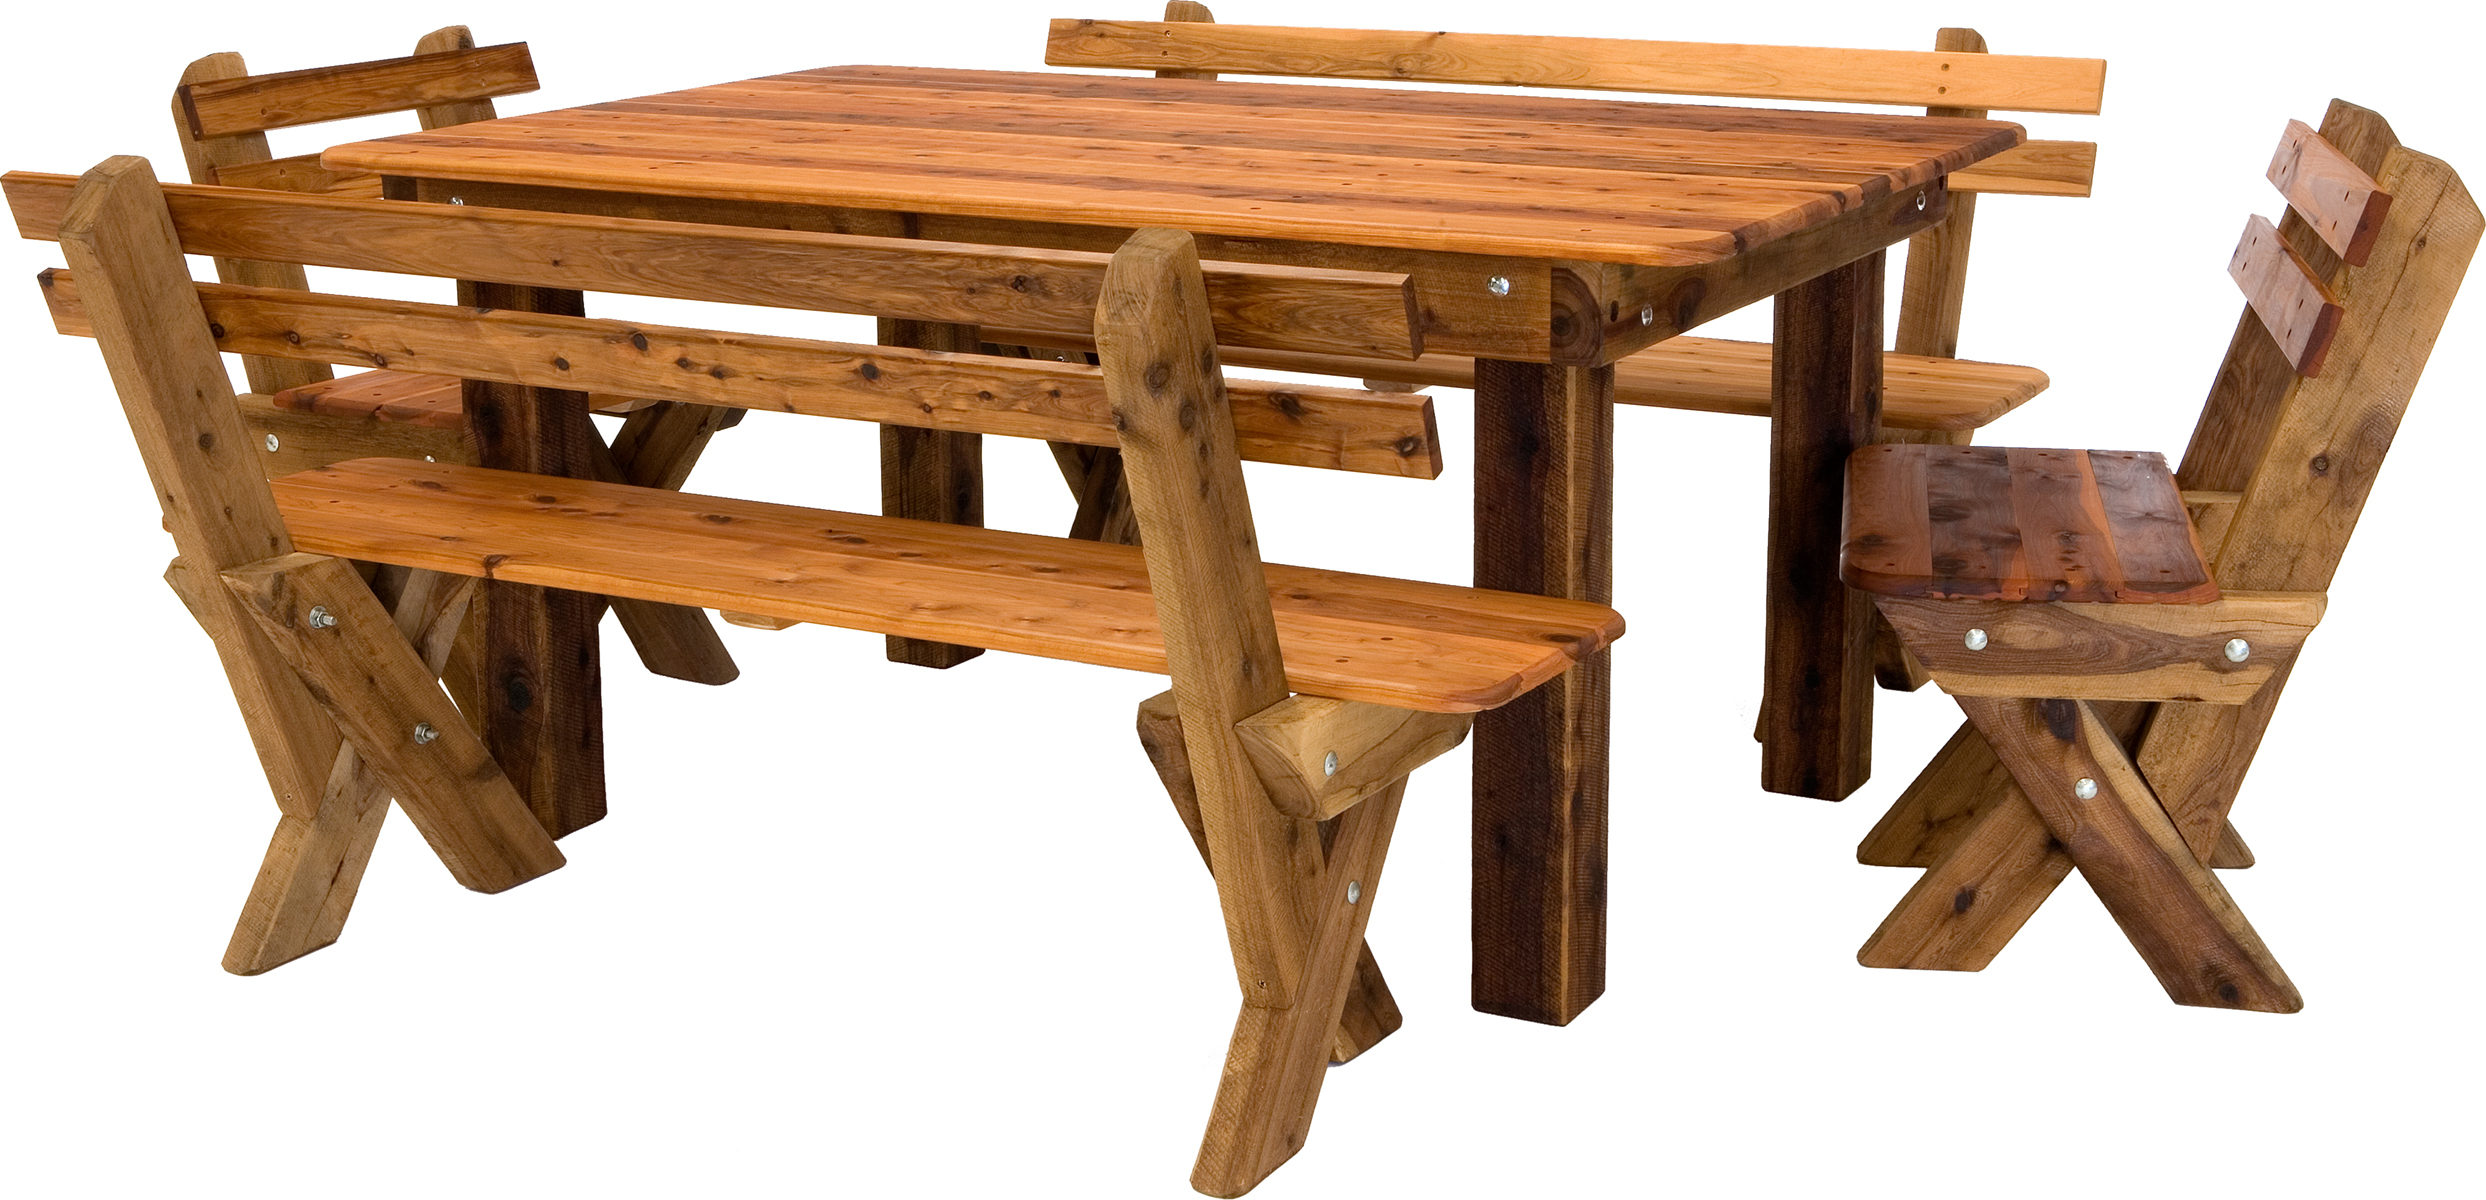 Palm beach cypress outdoor timber setting slat back available to order now